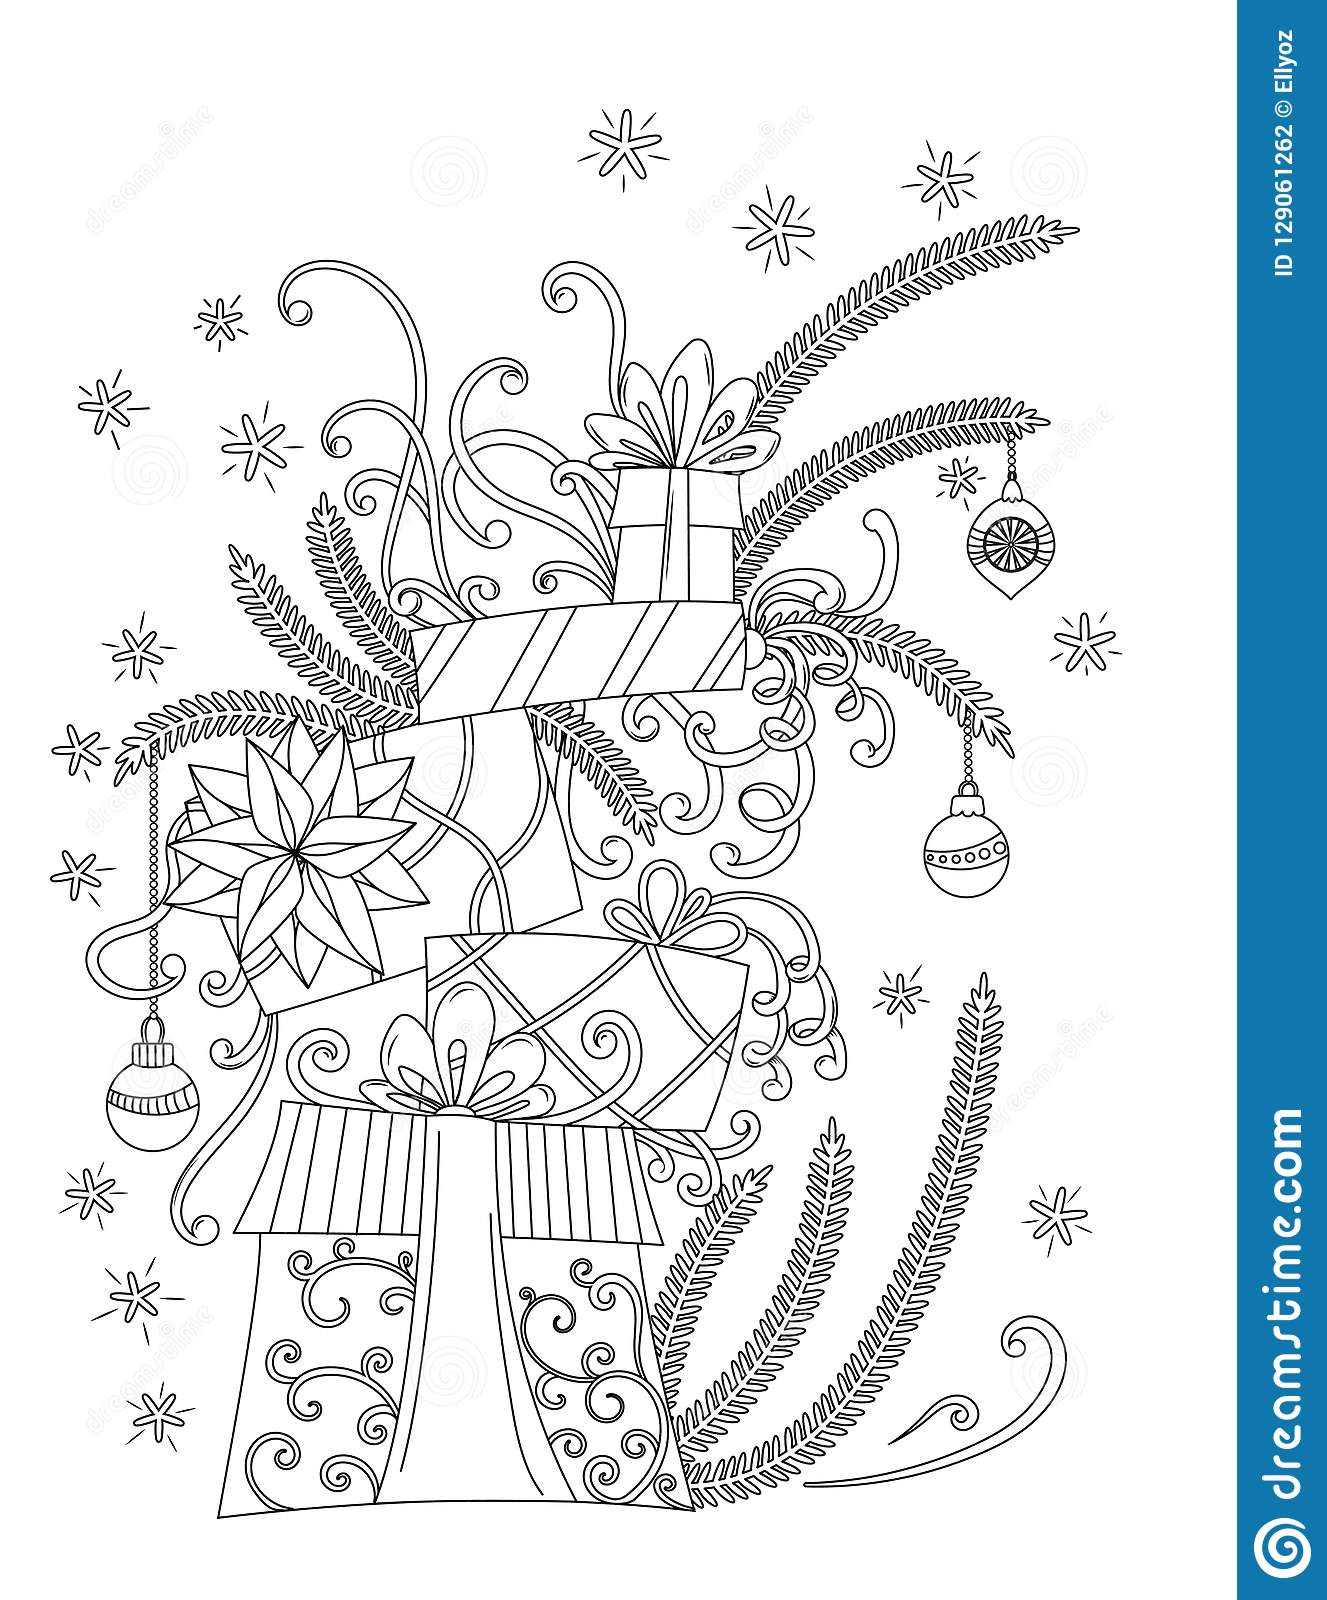 Christmas Coloring Pages Gifts With Page Stock Vector Illustration Of Merry 129061262